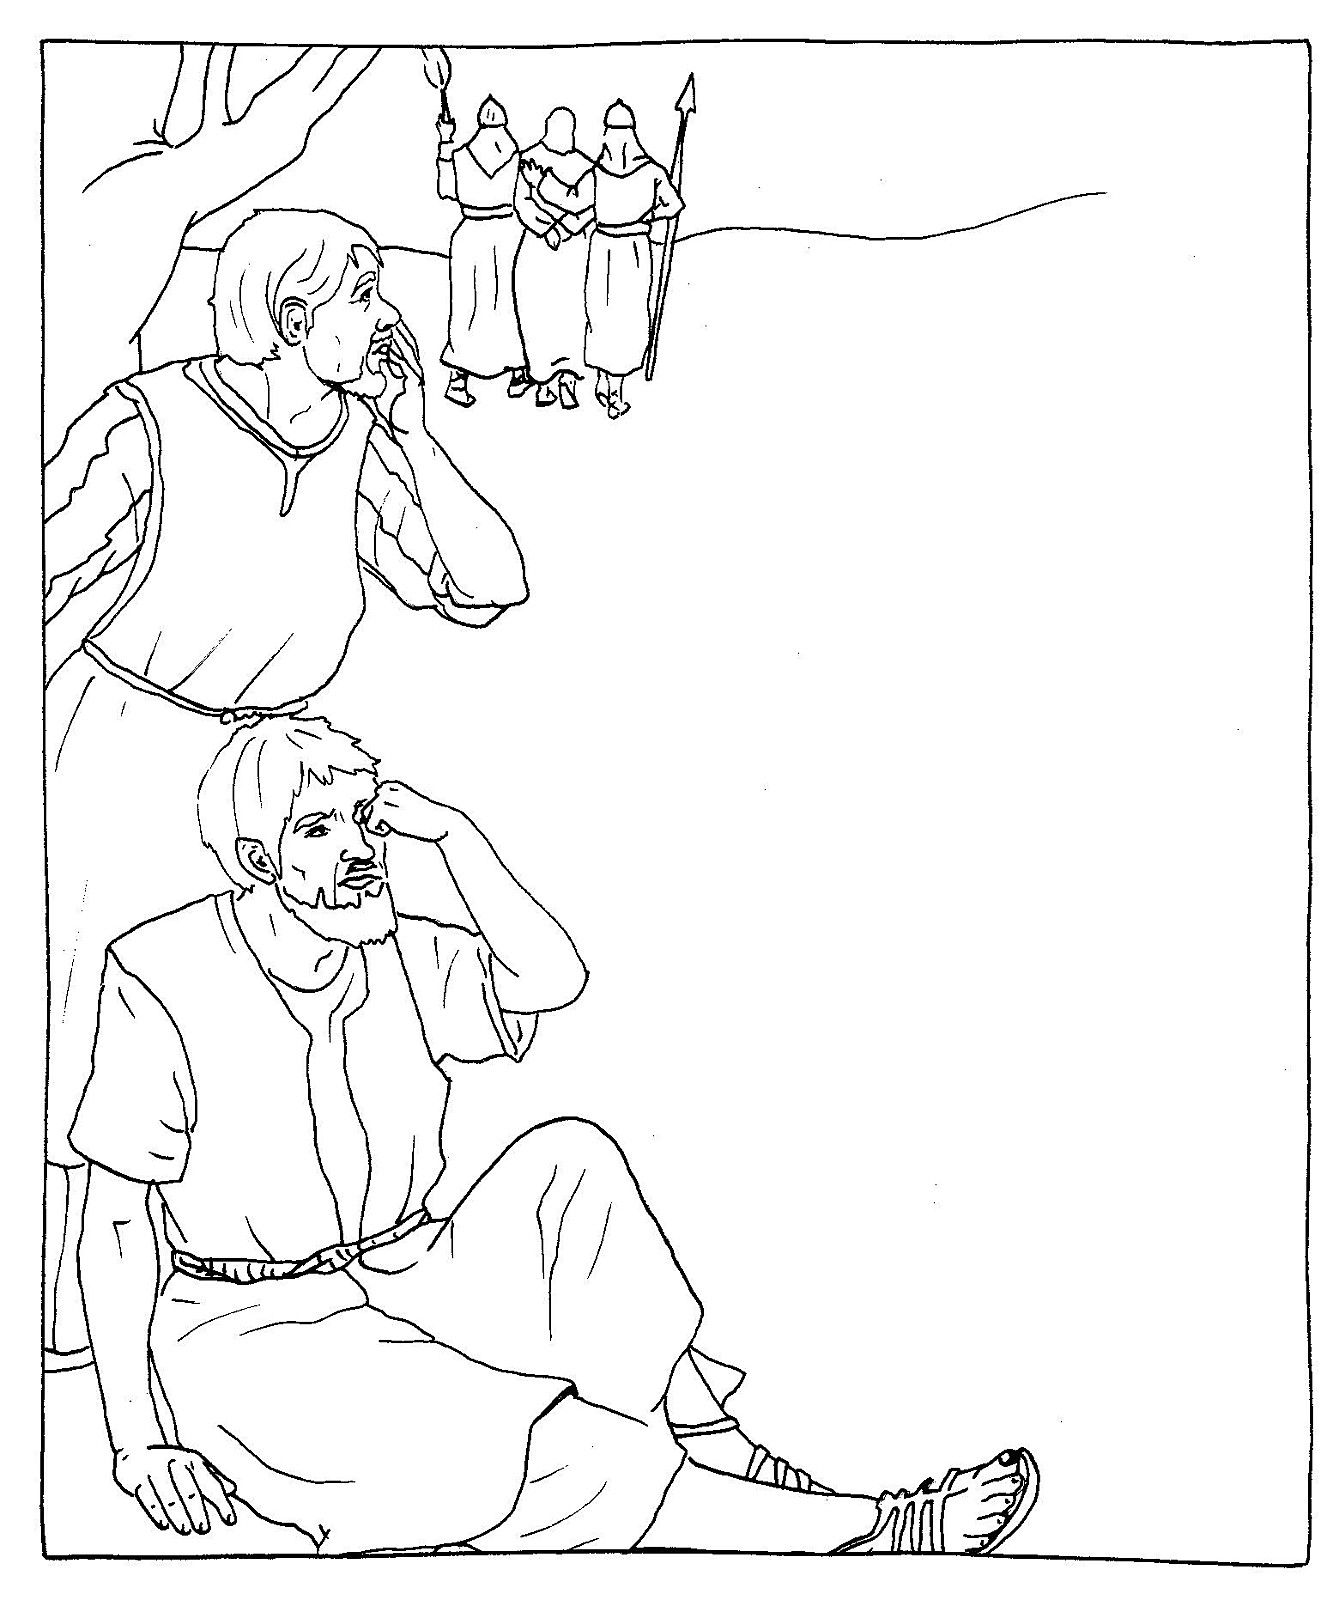 Good Friday Coloring Pages Coloring sheets for easter